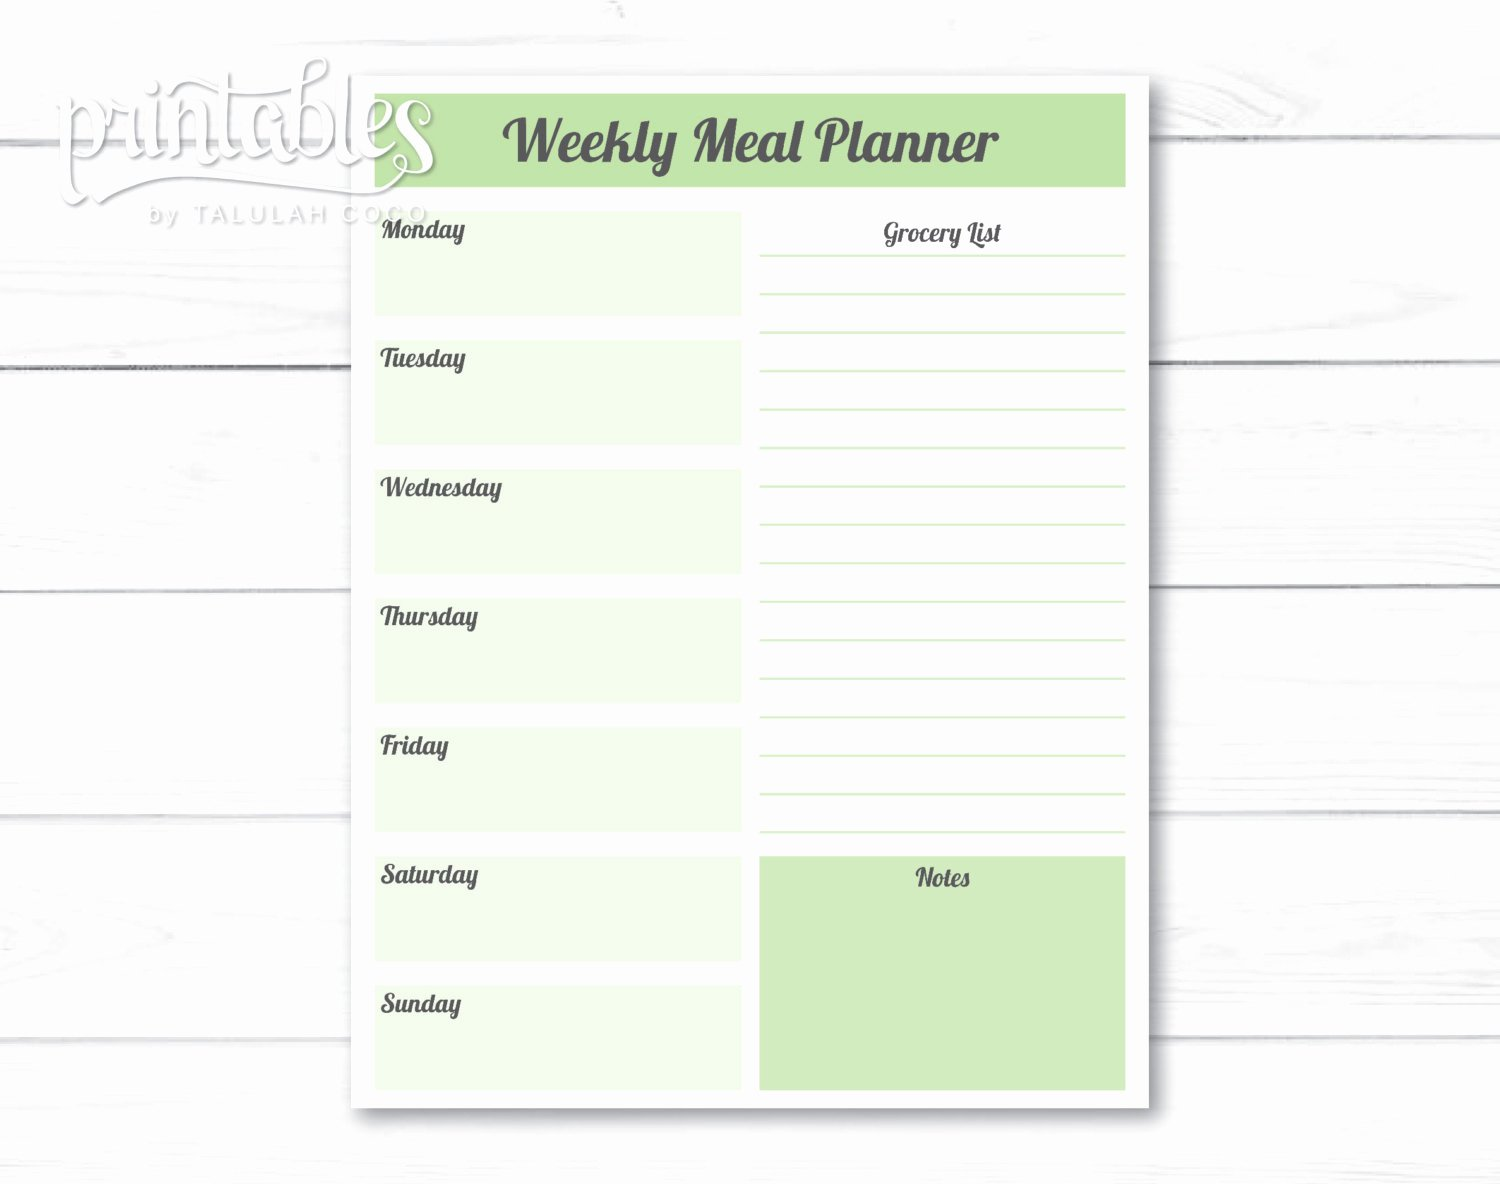 Meal Plan Weekly Template Unique Editable Meal Planner Template Weekly Meal Planner with